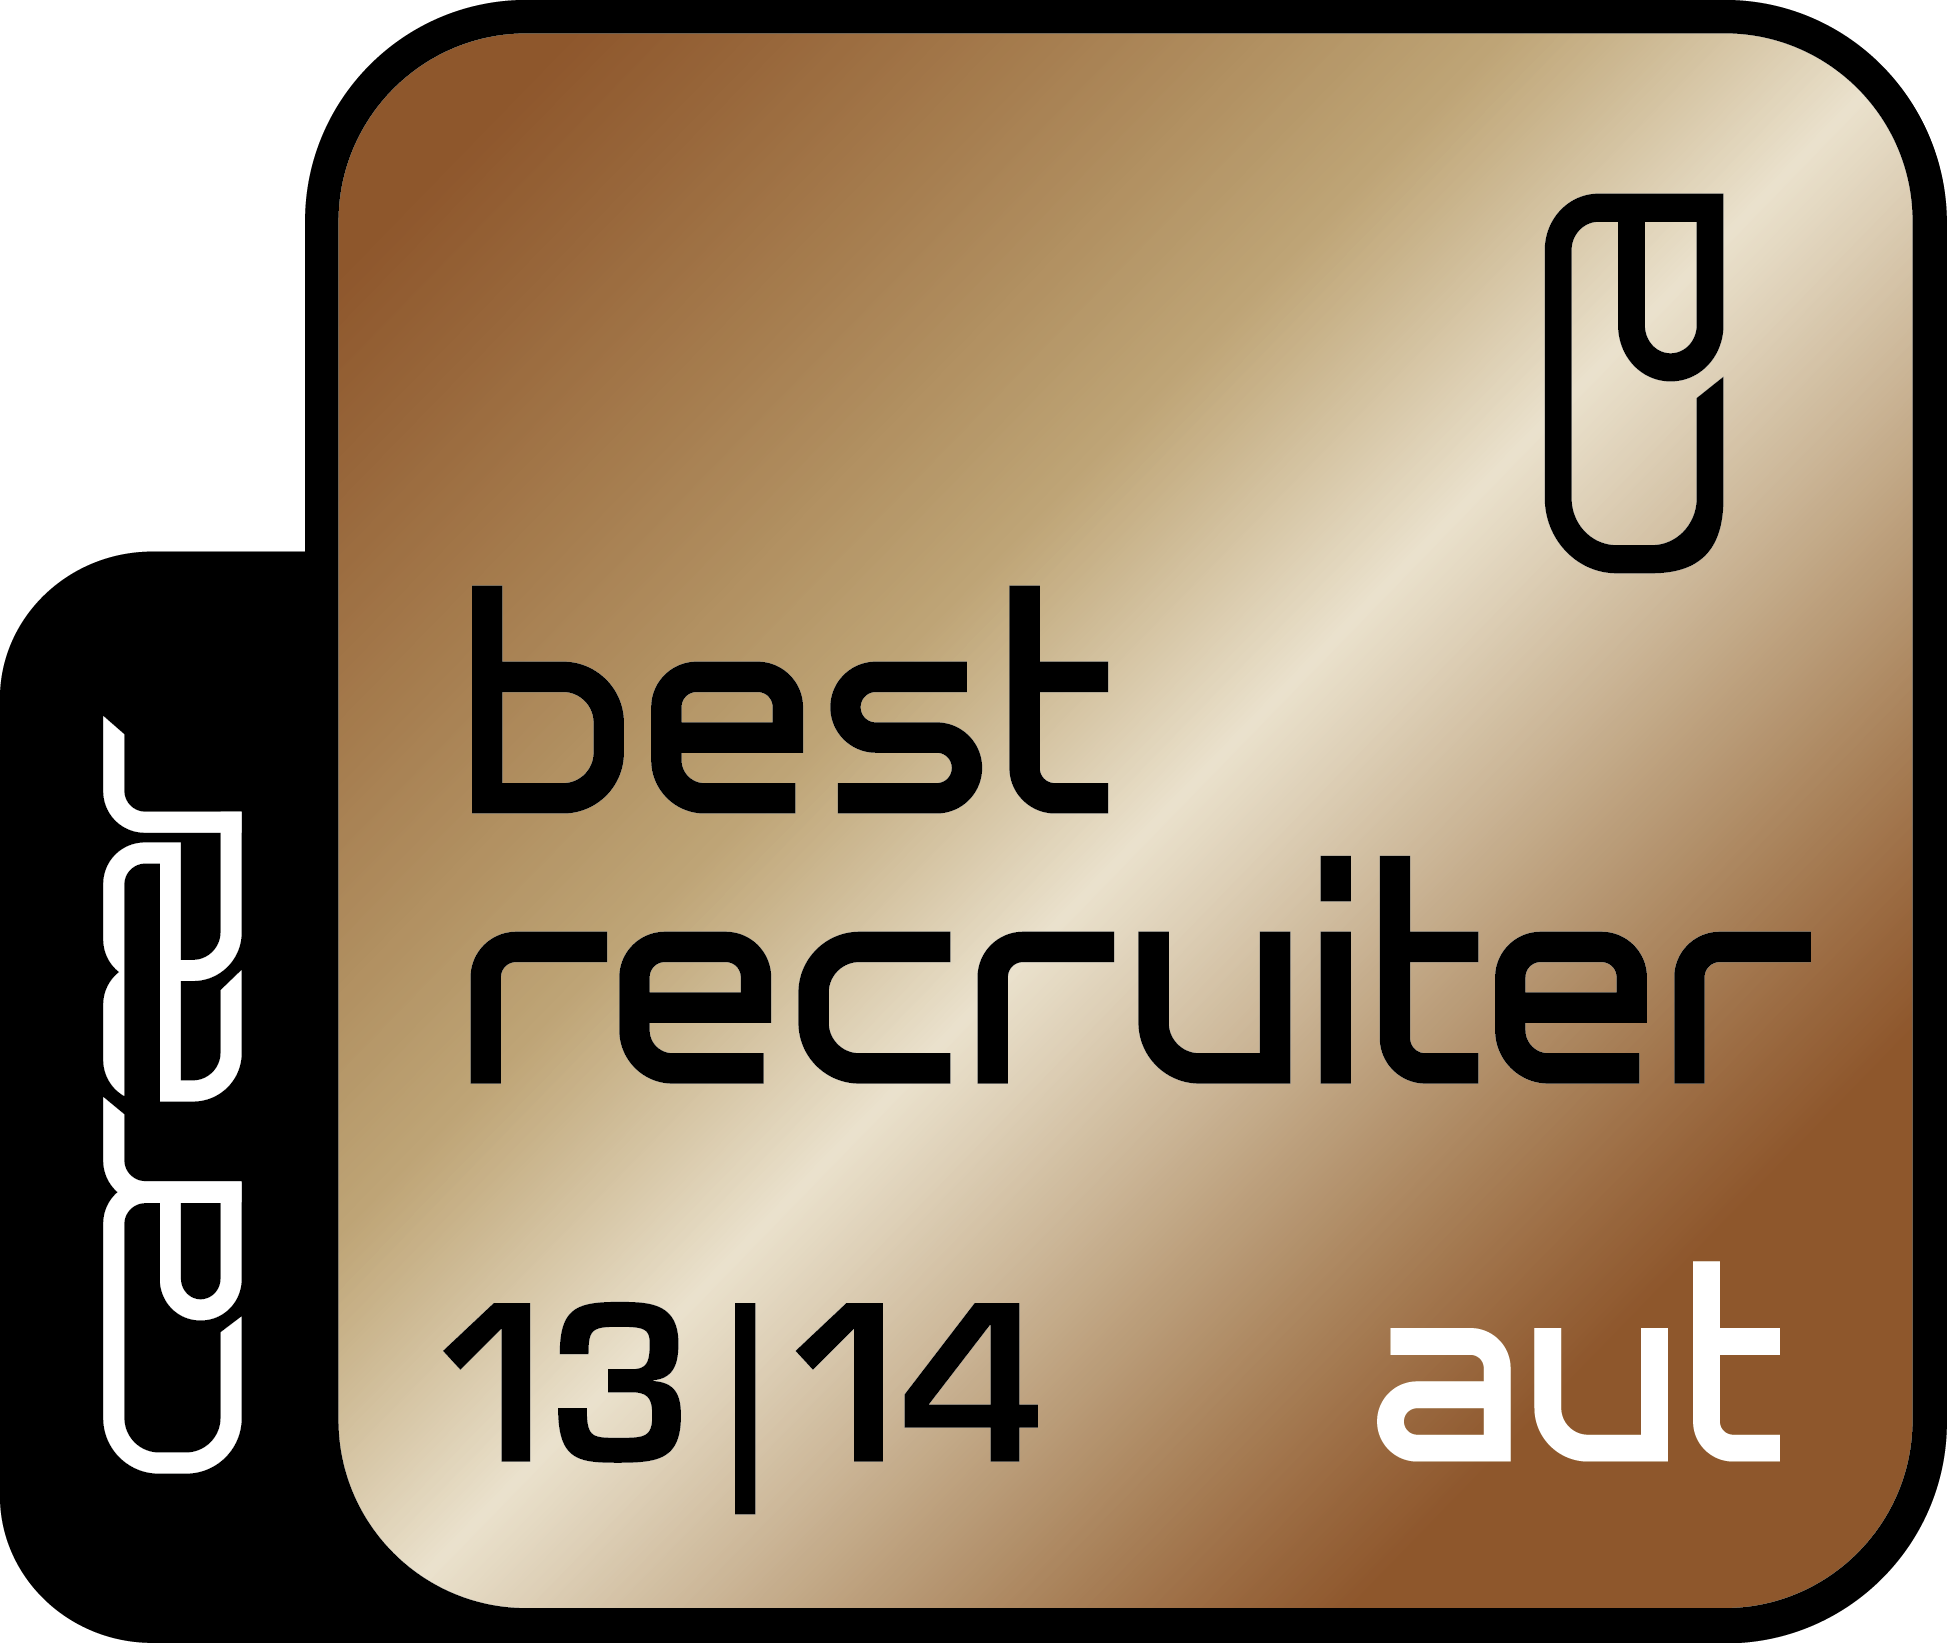 Best Recruiters Bronze AUT 13/14